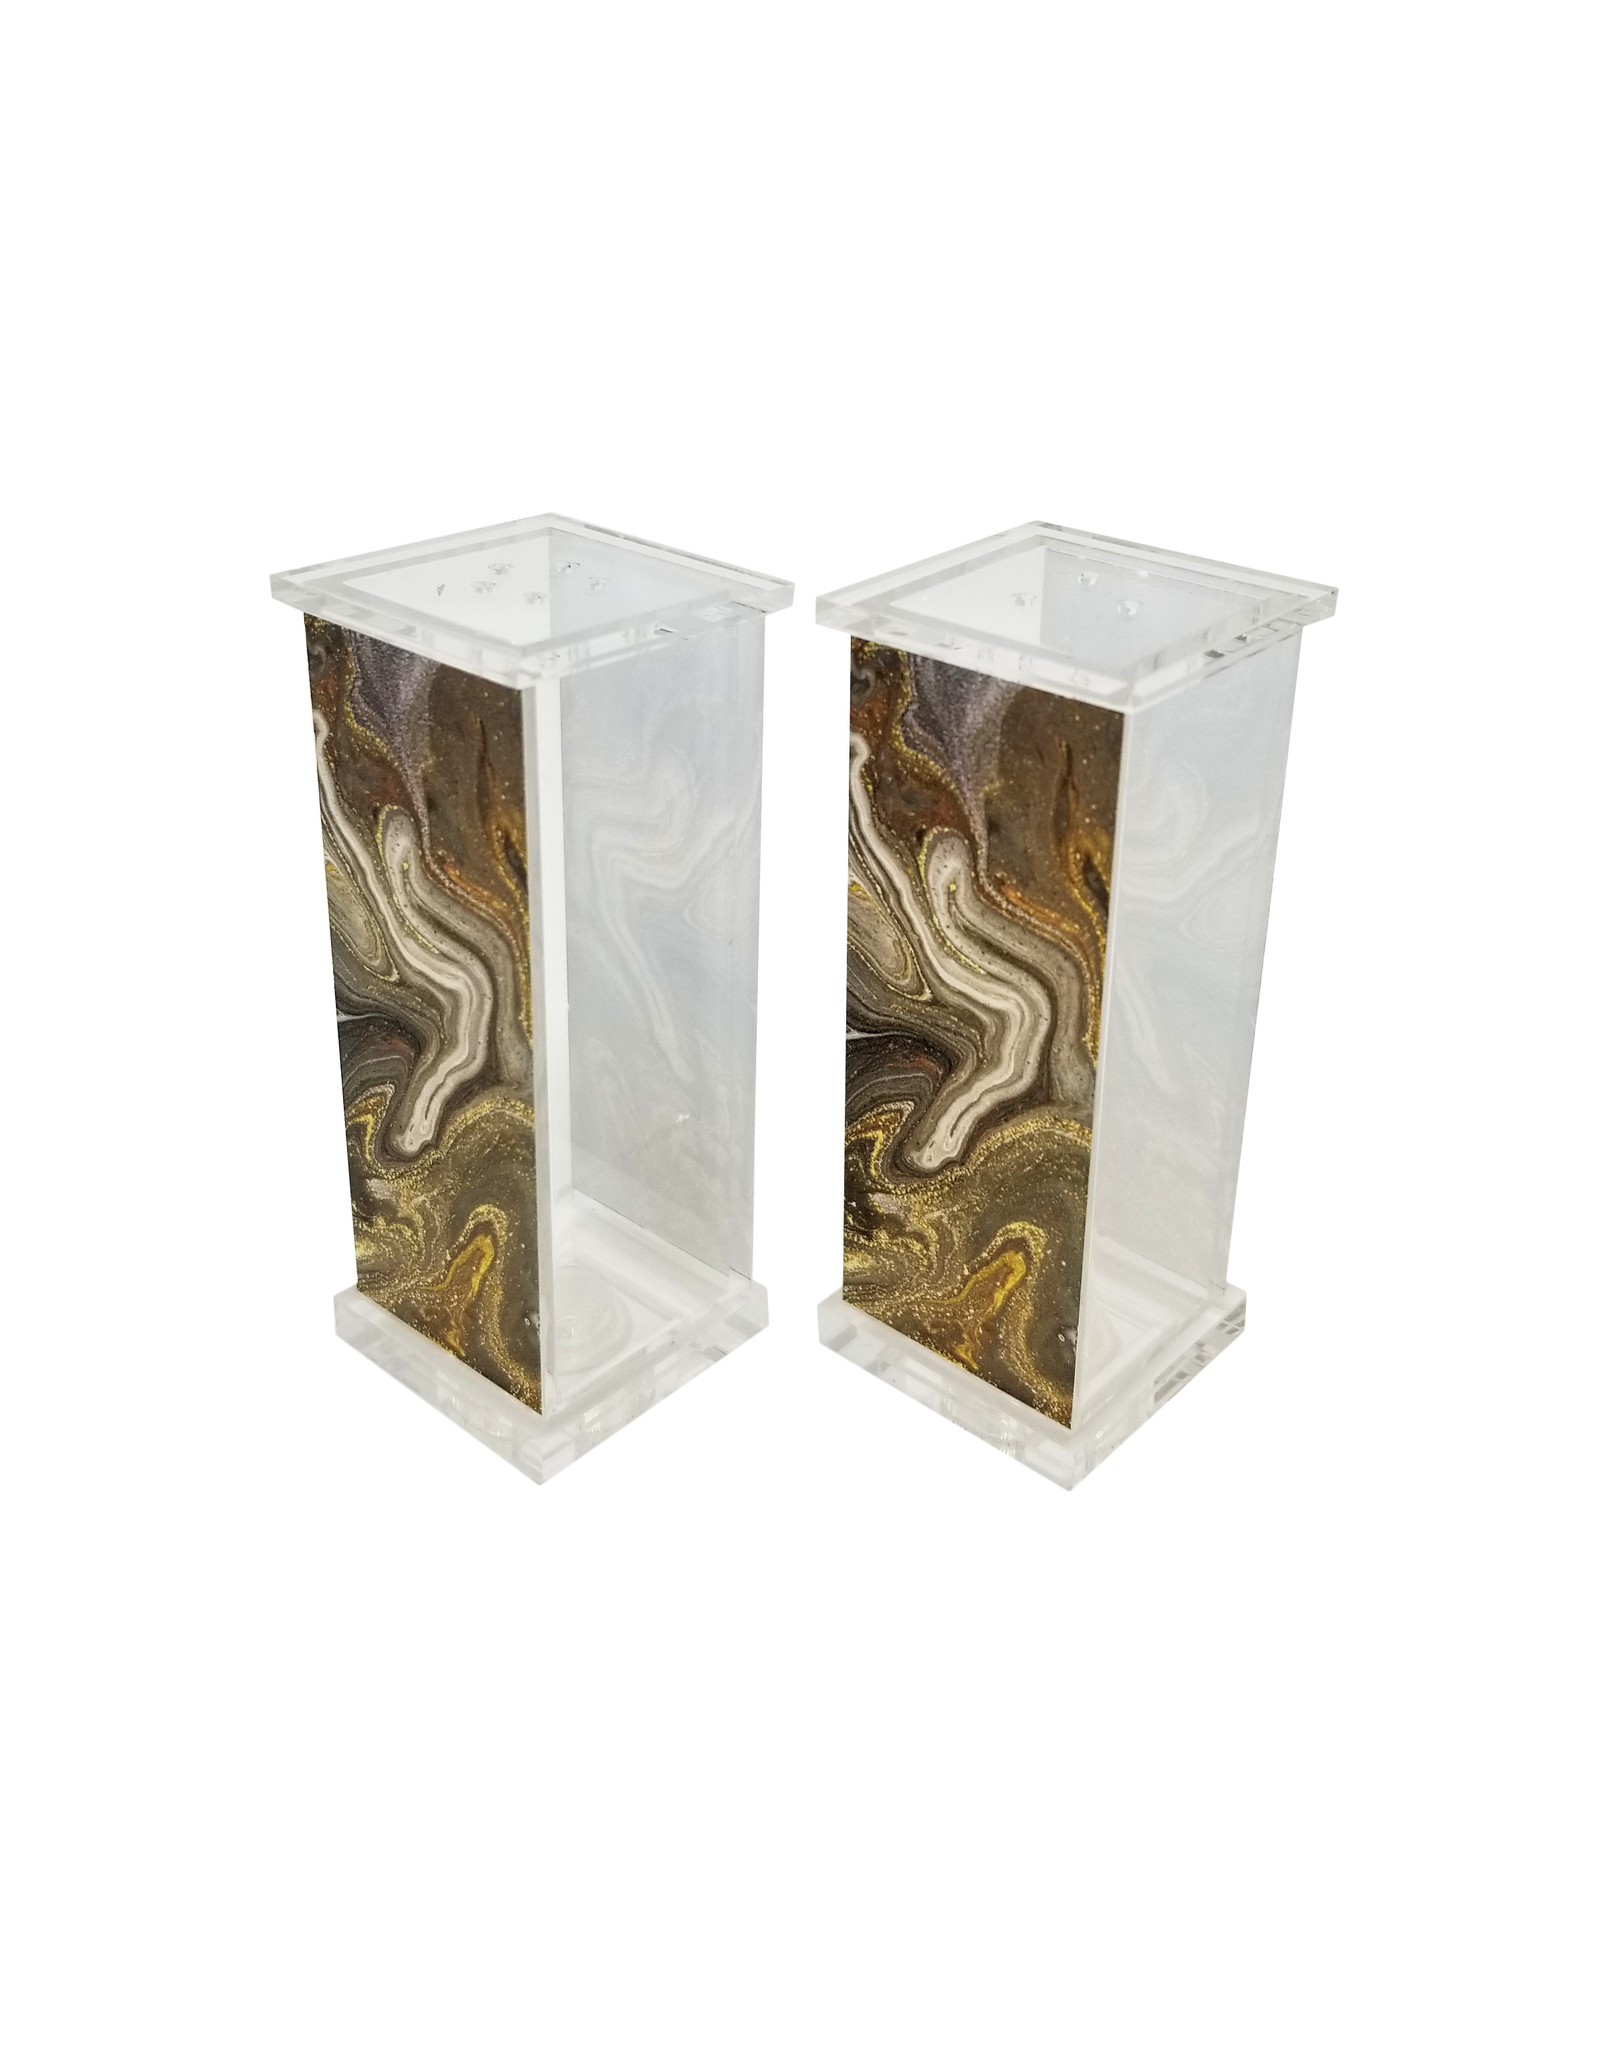 Presented Touch Acrylic Salt & Pepper Set Black Marble